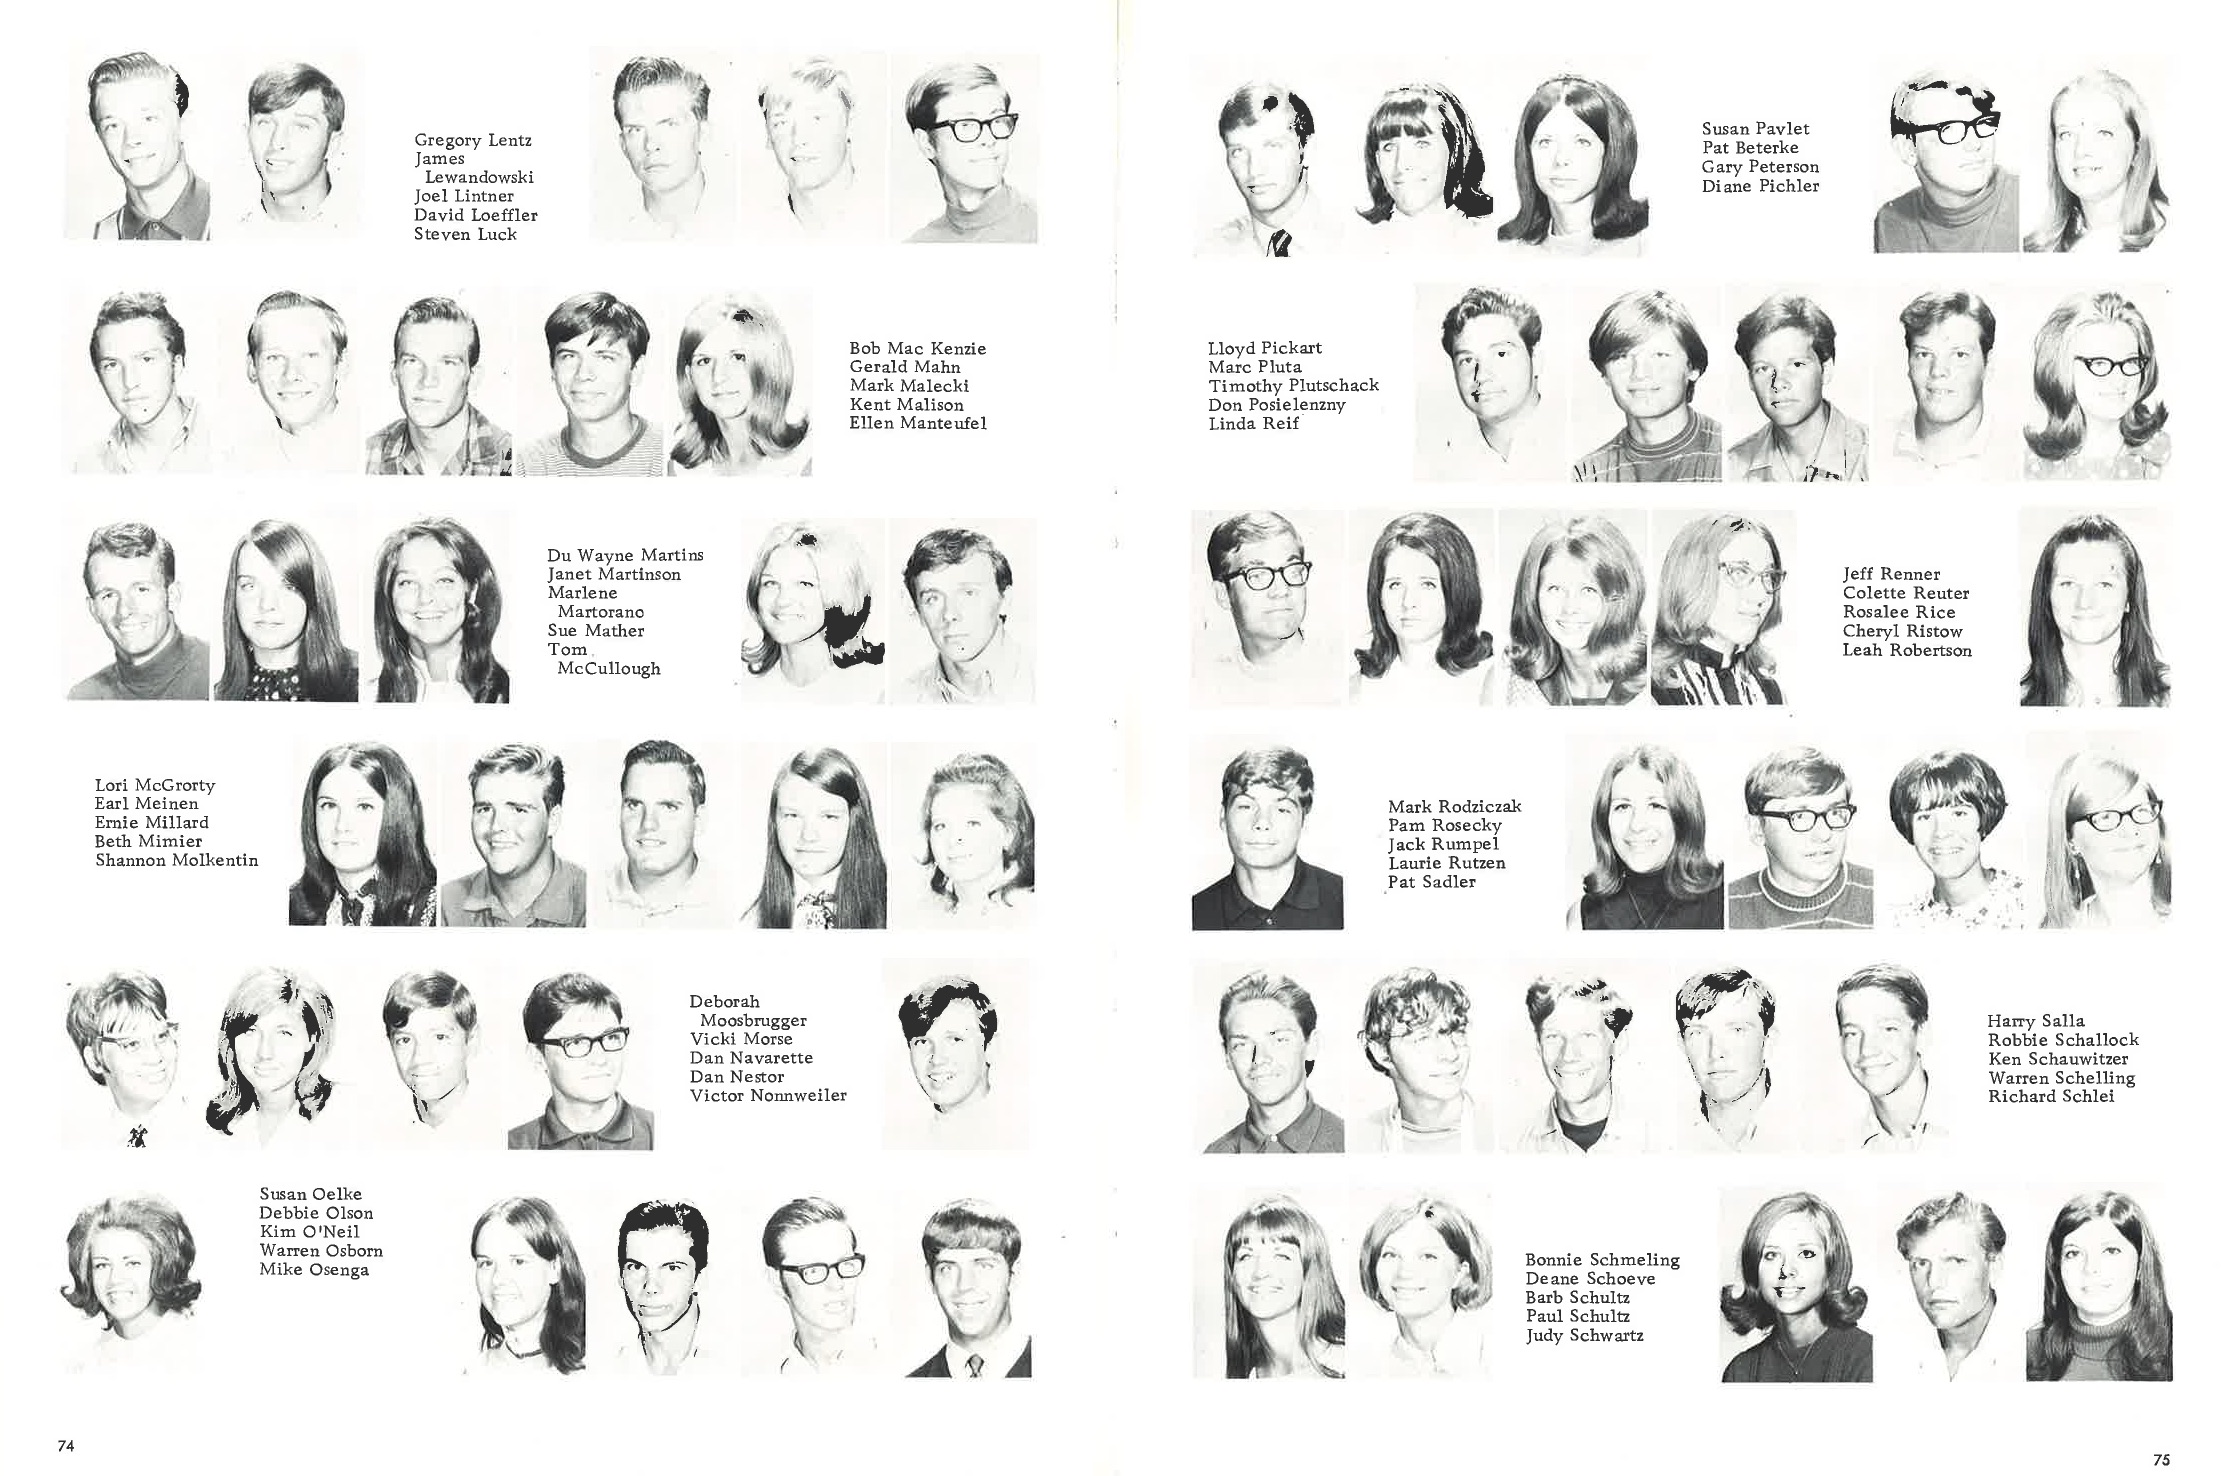 1970_Yearbook_74-75.jpg